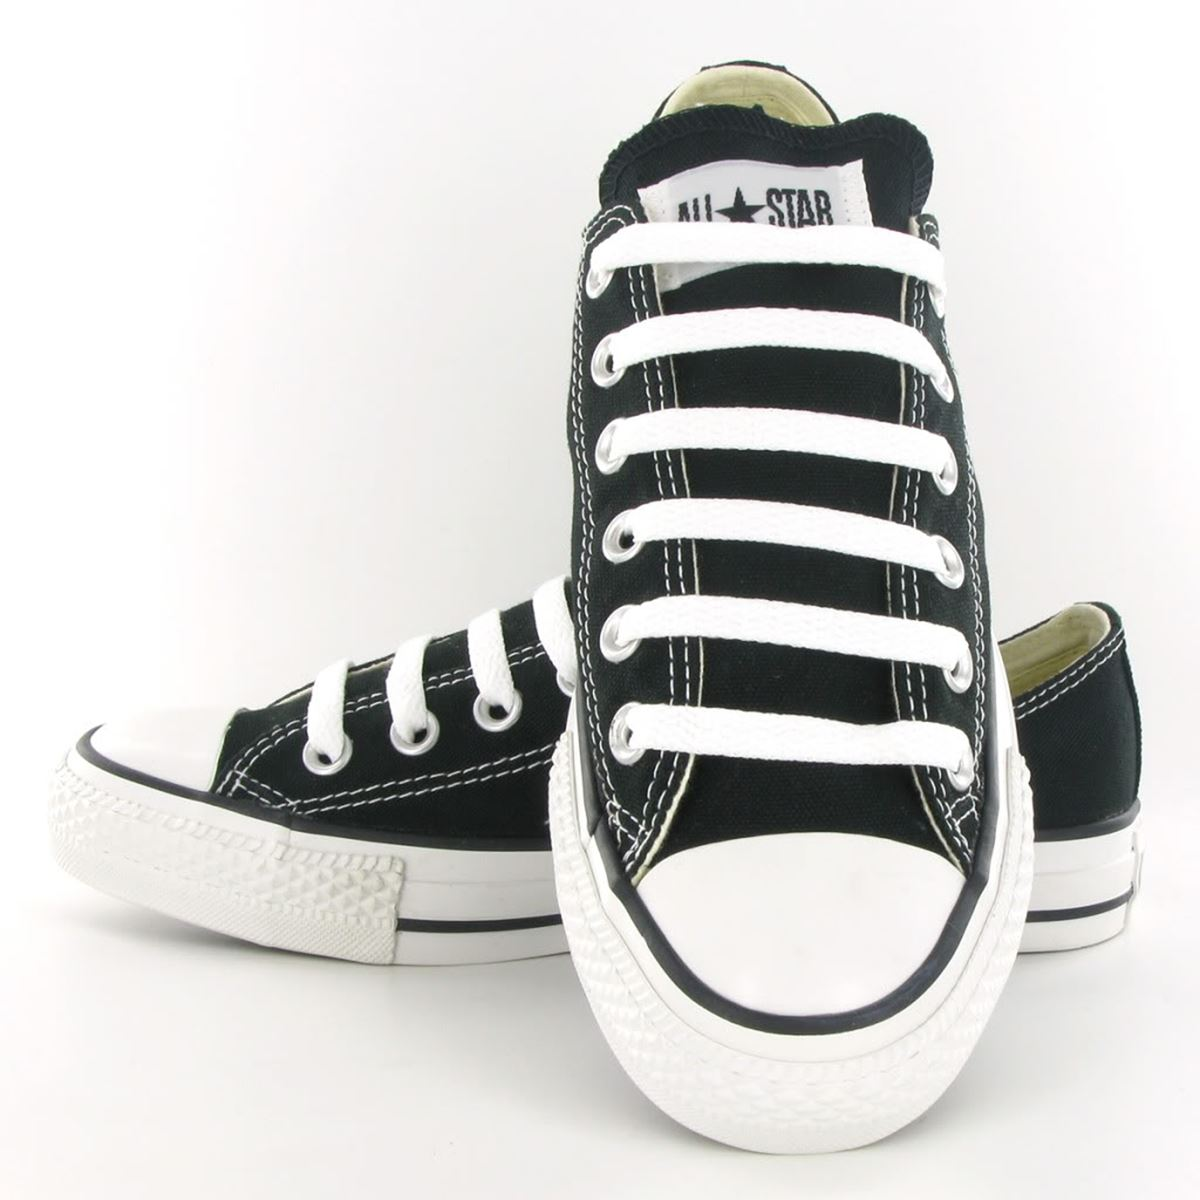 Converse-All-Star-Ox-Unisex-Mens-Womens-Ladies-Trainers thumbnail 5